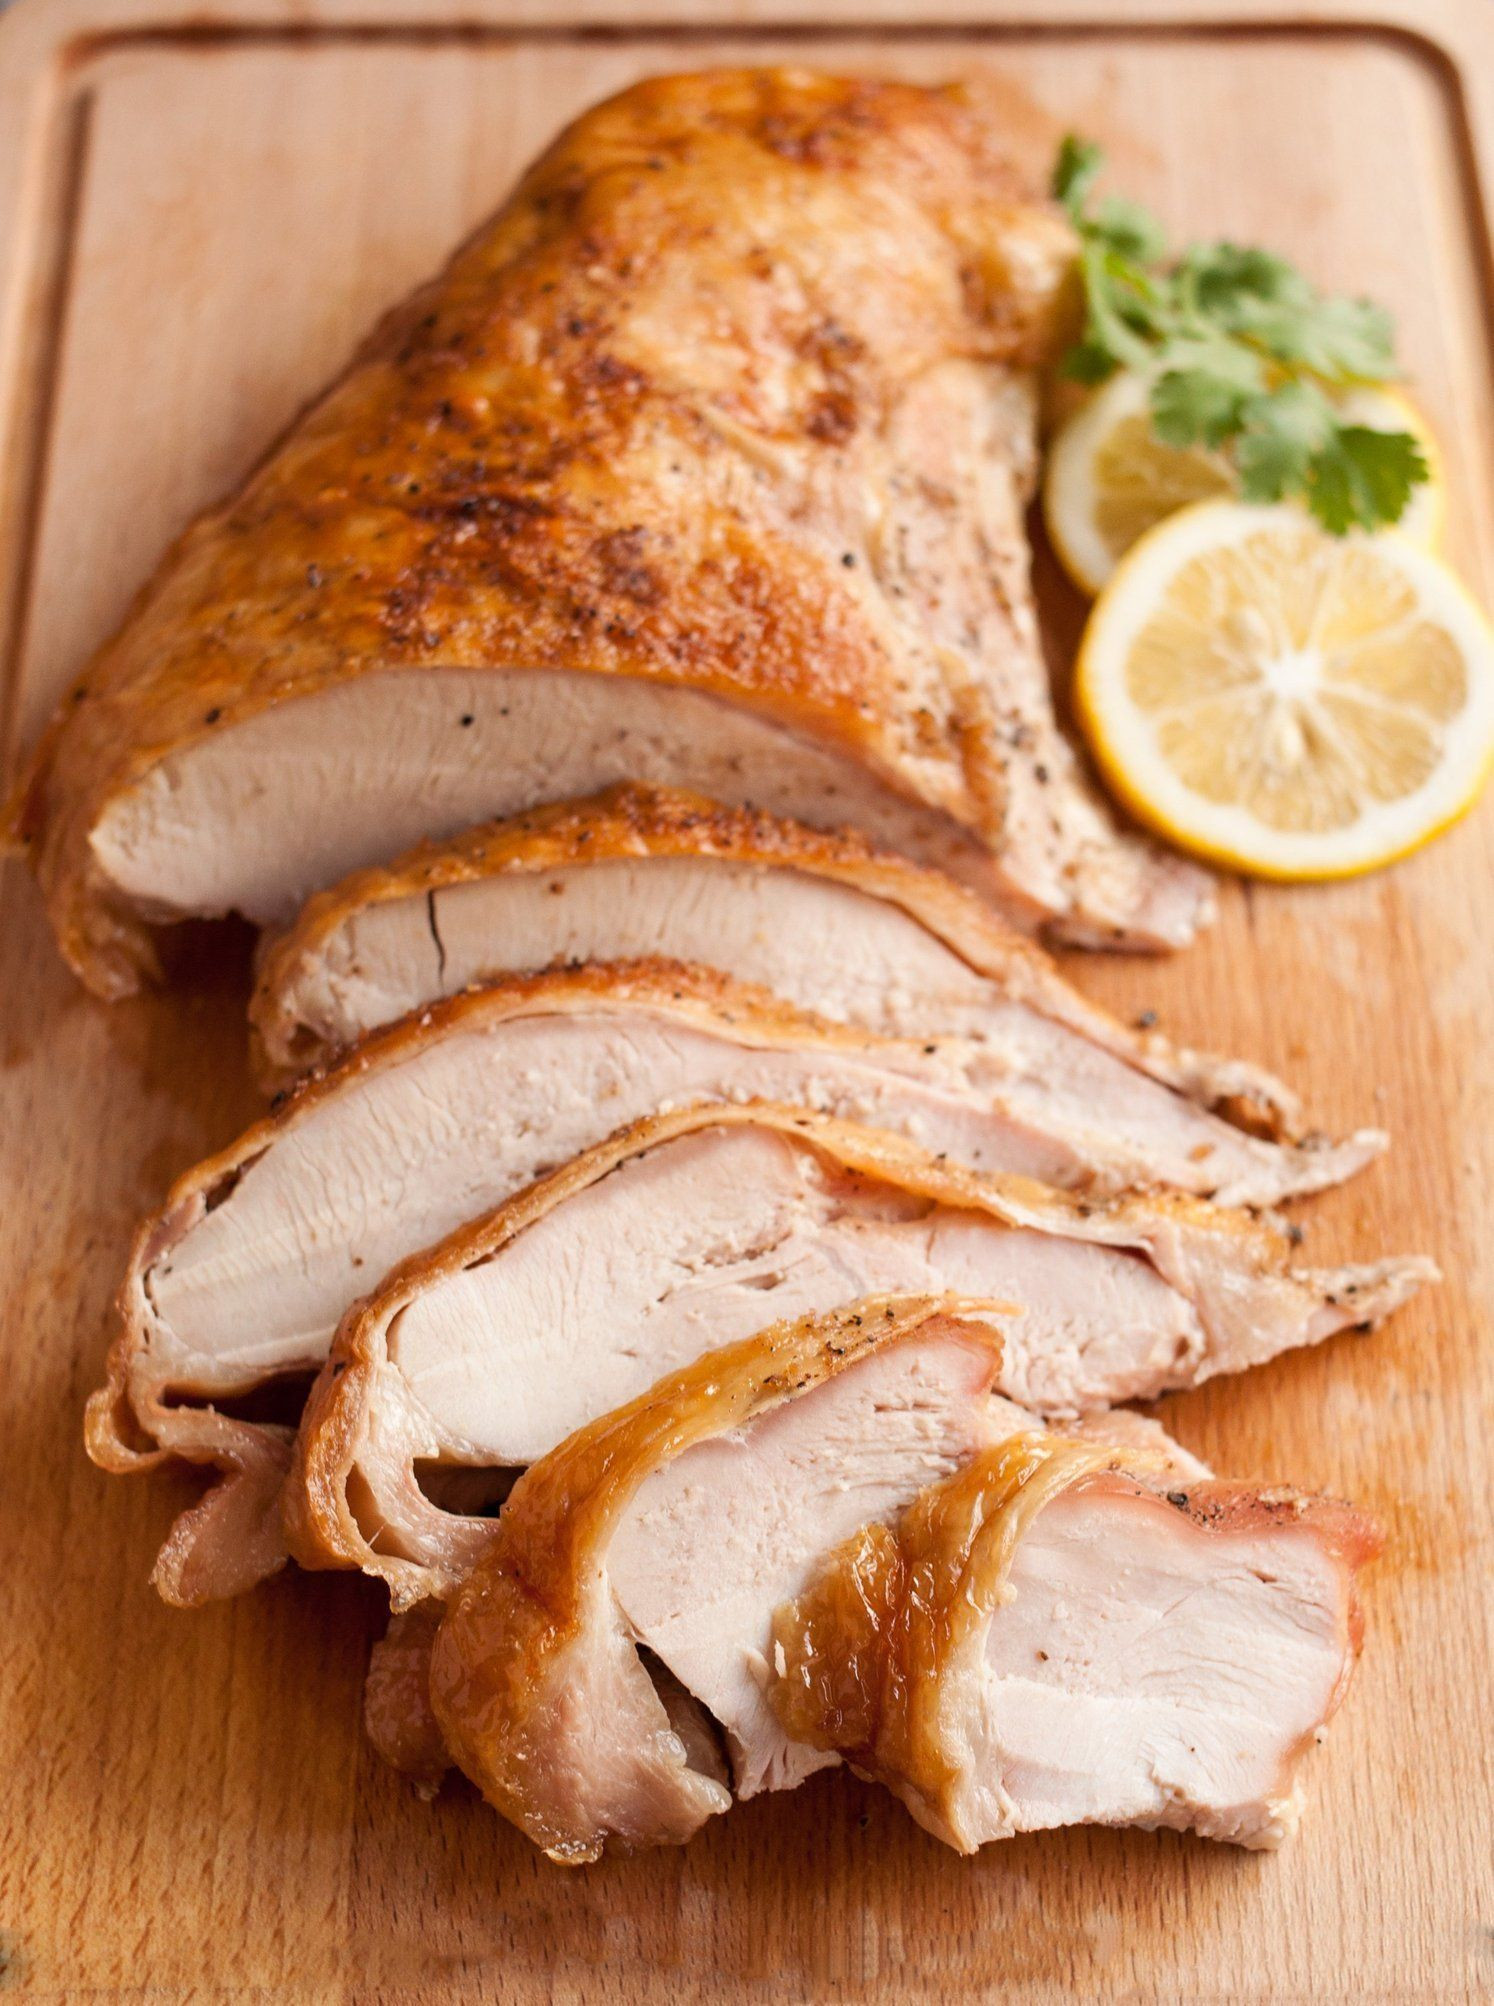 Turkey Breast Recipe For Thanksgiving  How To Cook Turkey Breast Recipe